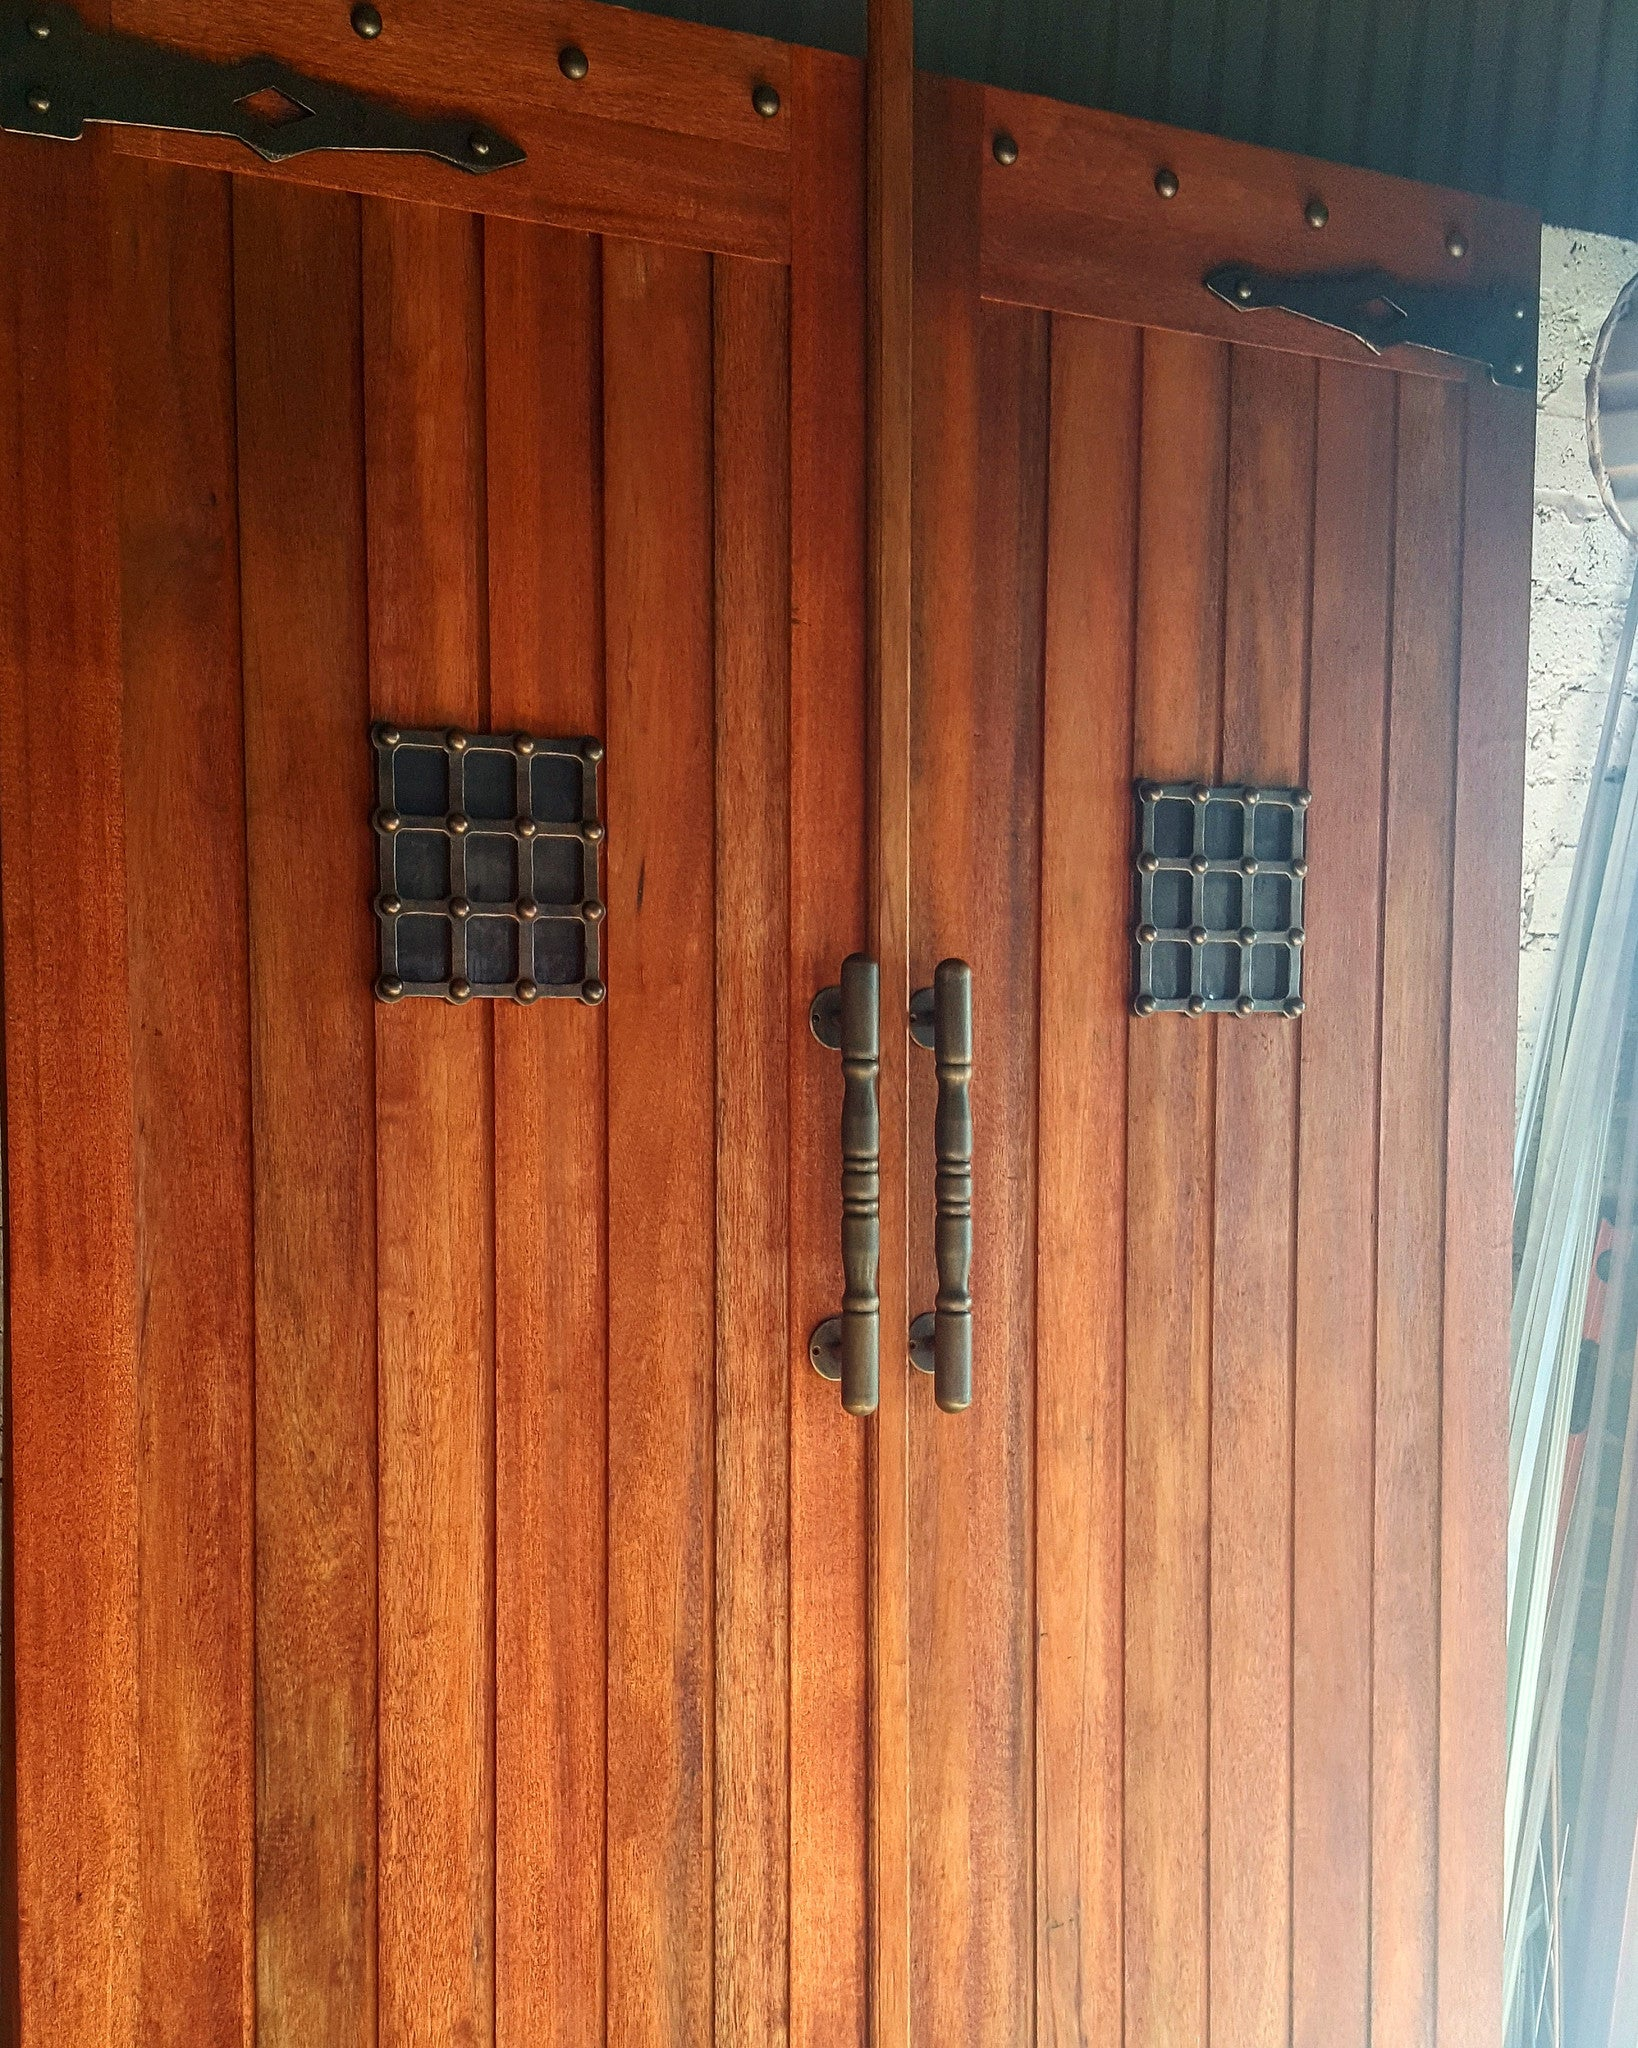 Create your own farm style door using NW/AC6 mock hinges, NW/AC32 door grills and NW/35DD decorative studs